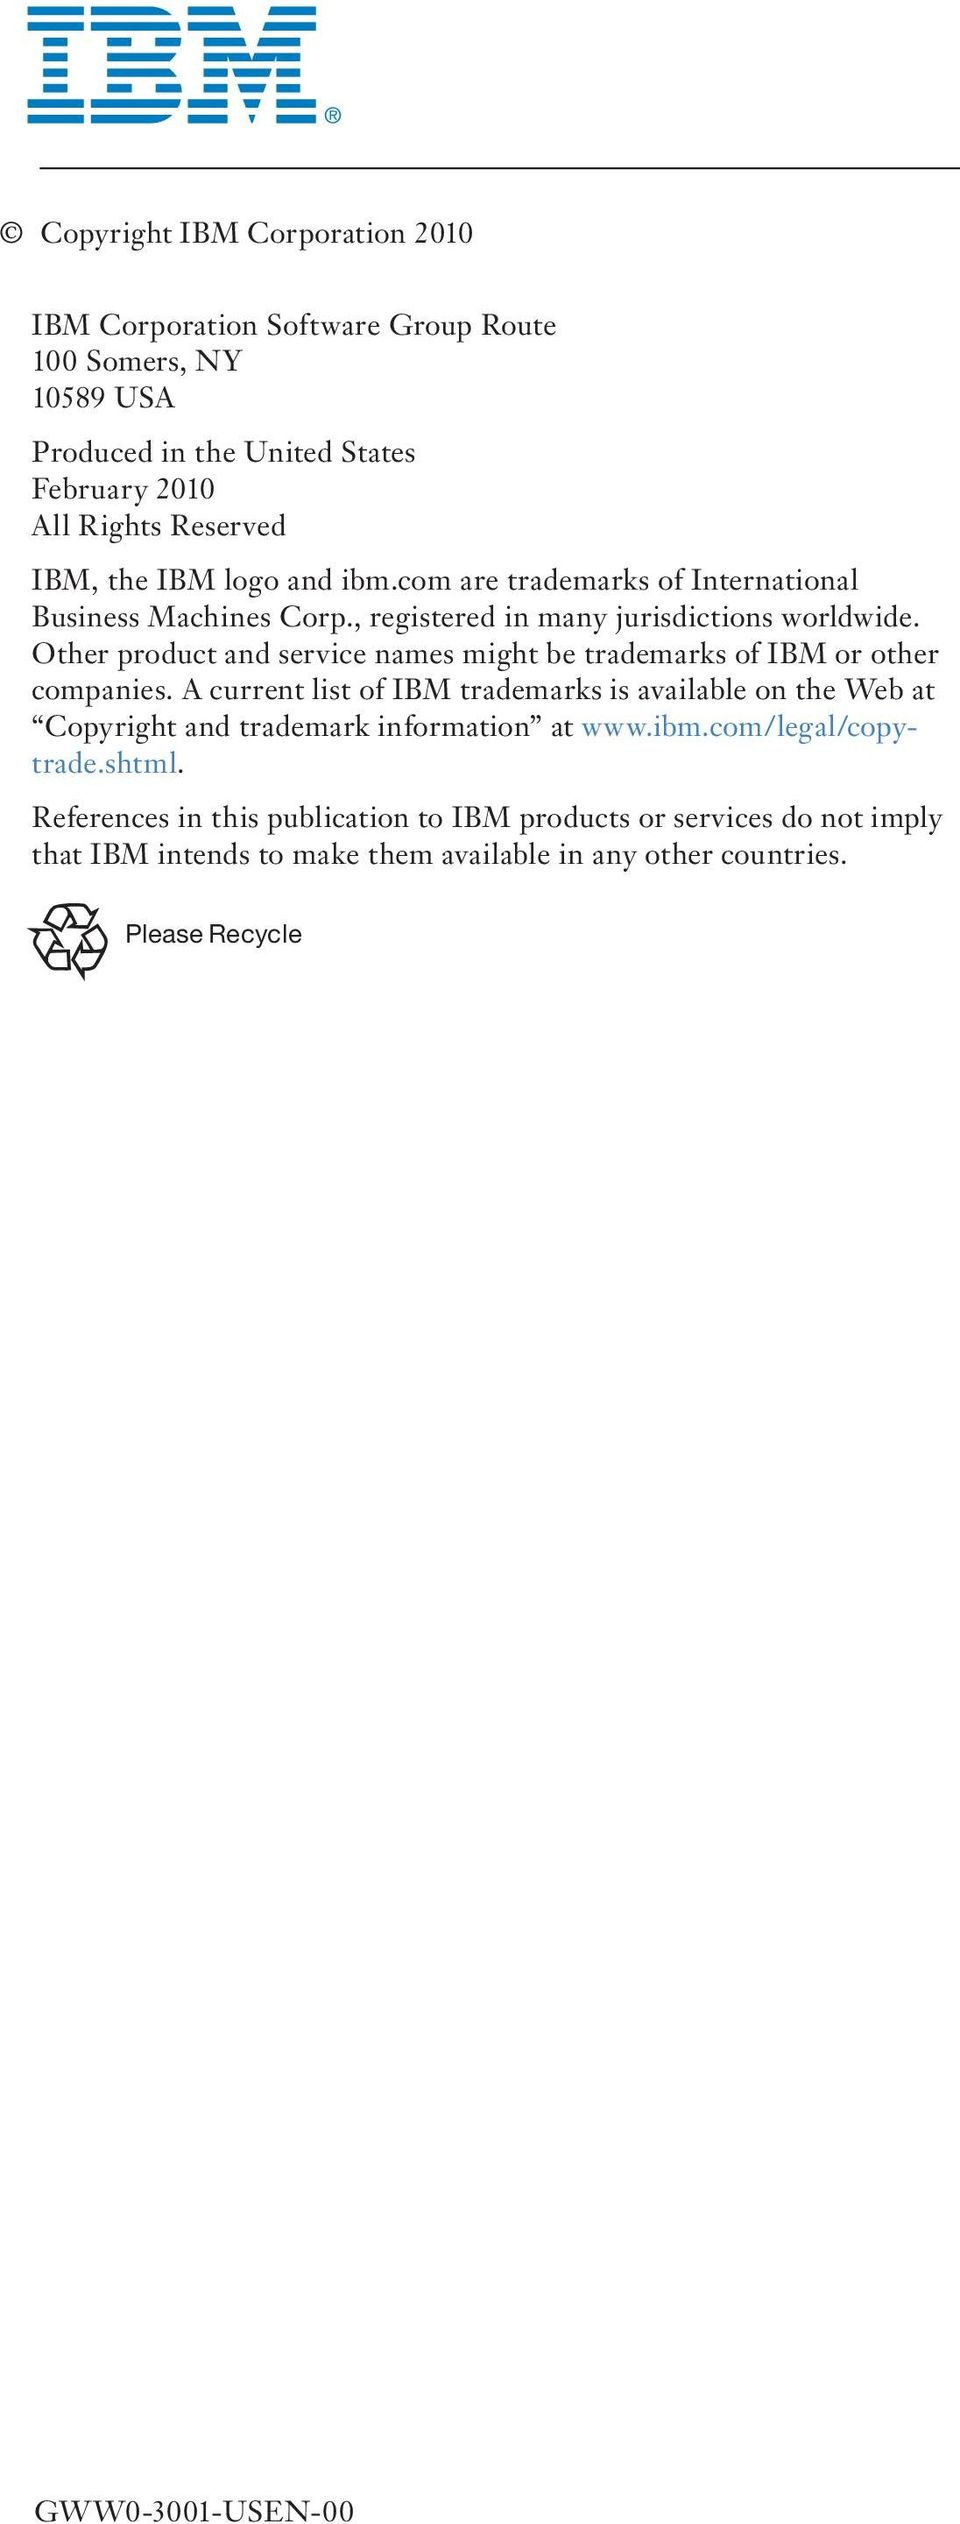 Other product and service names might be trademarks of IBM or other companies.